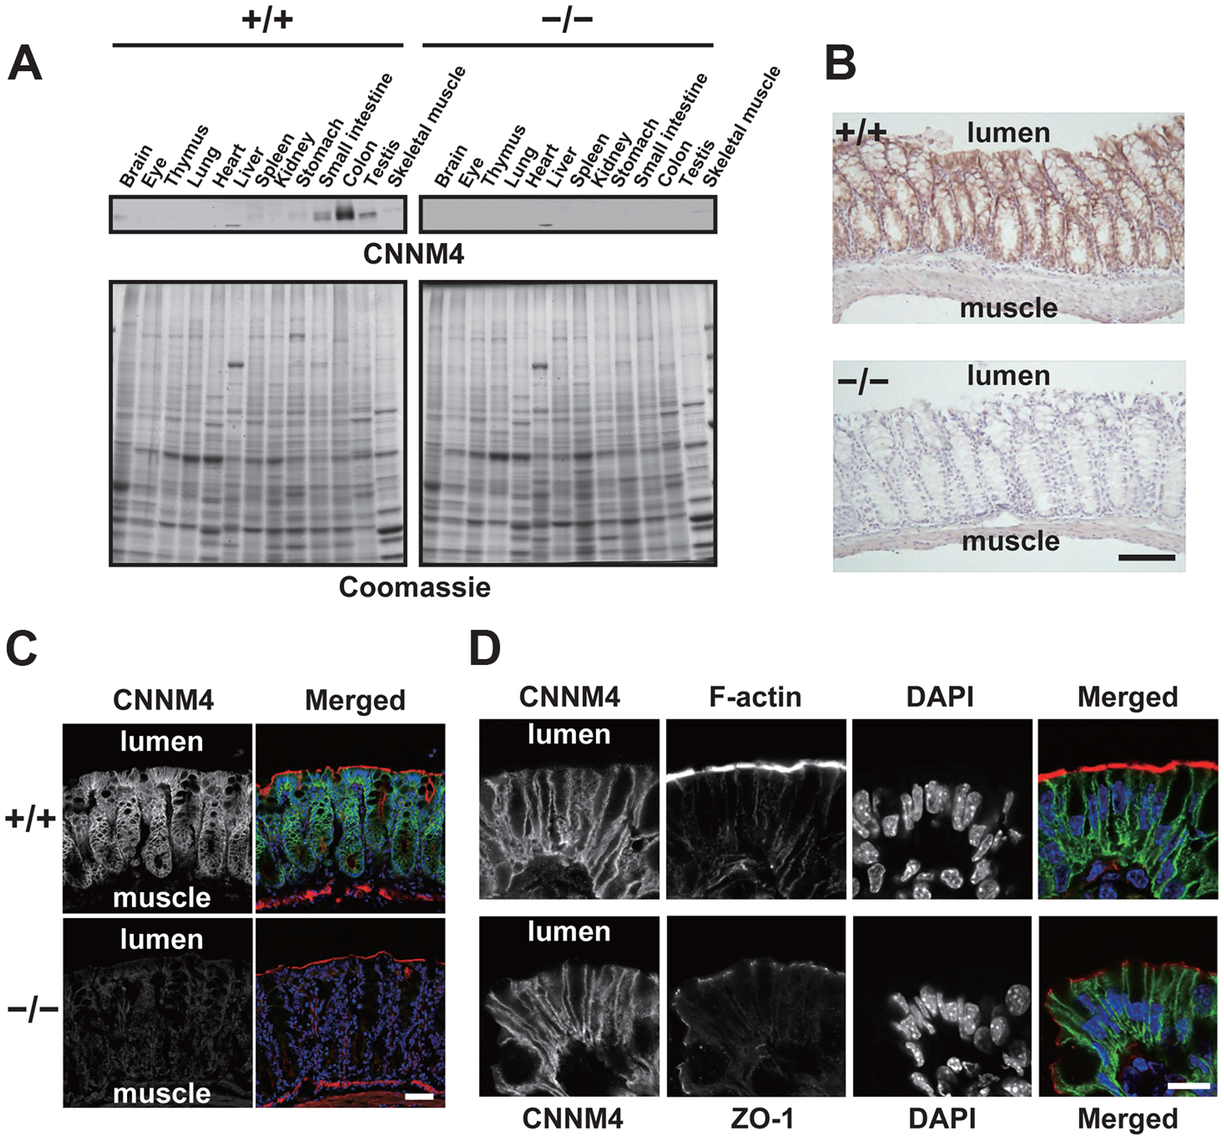 Basolateral localization of CNNM4 in the intestinal epithelia.